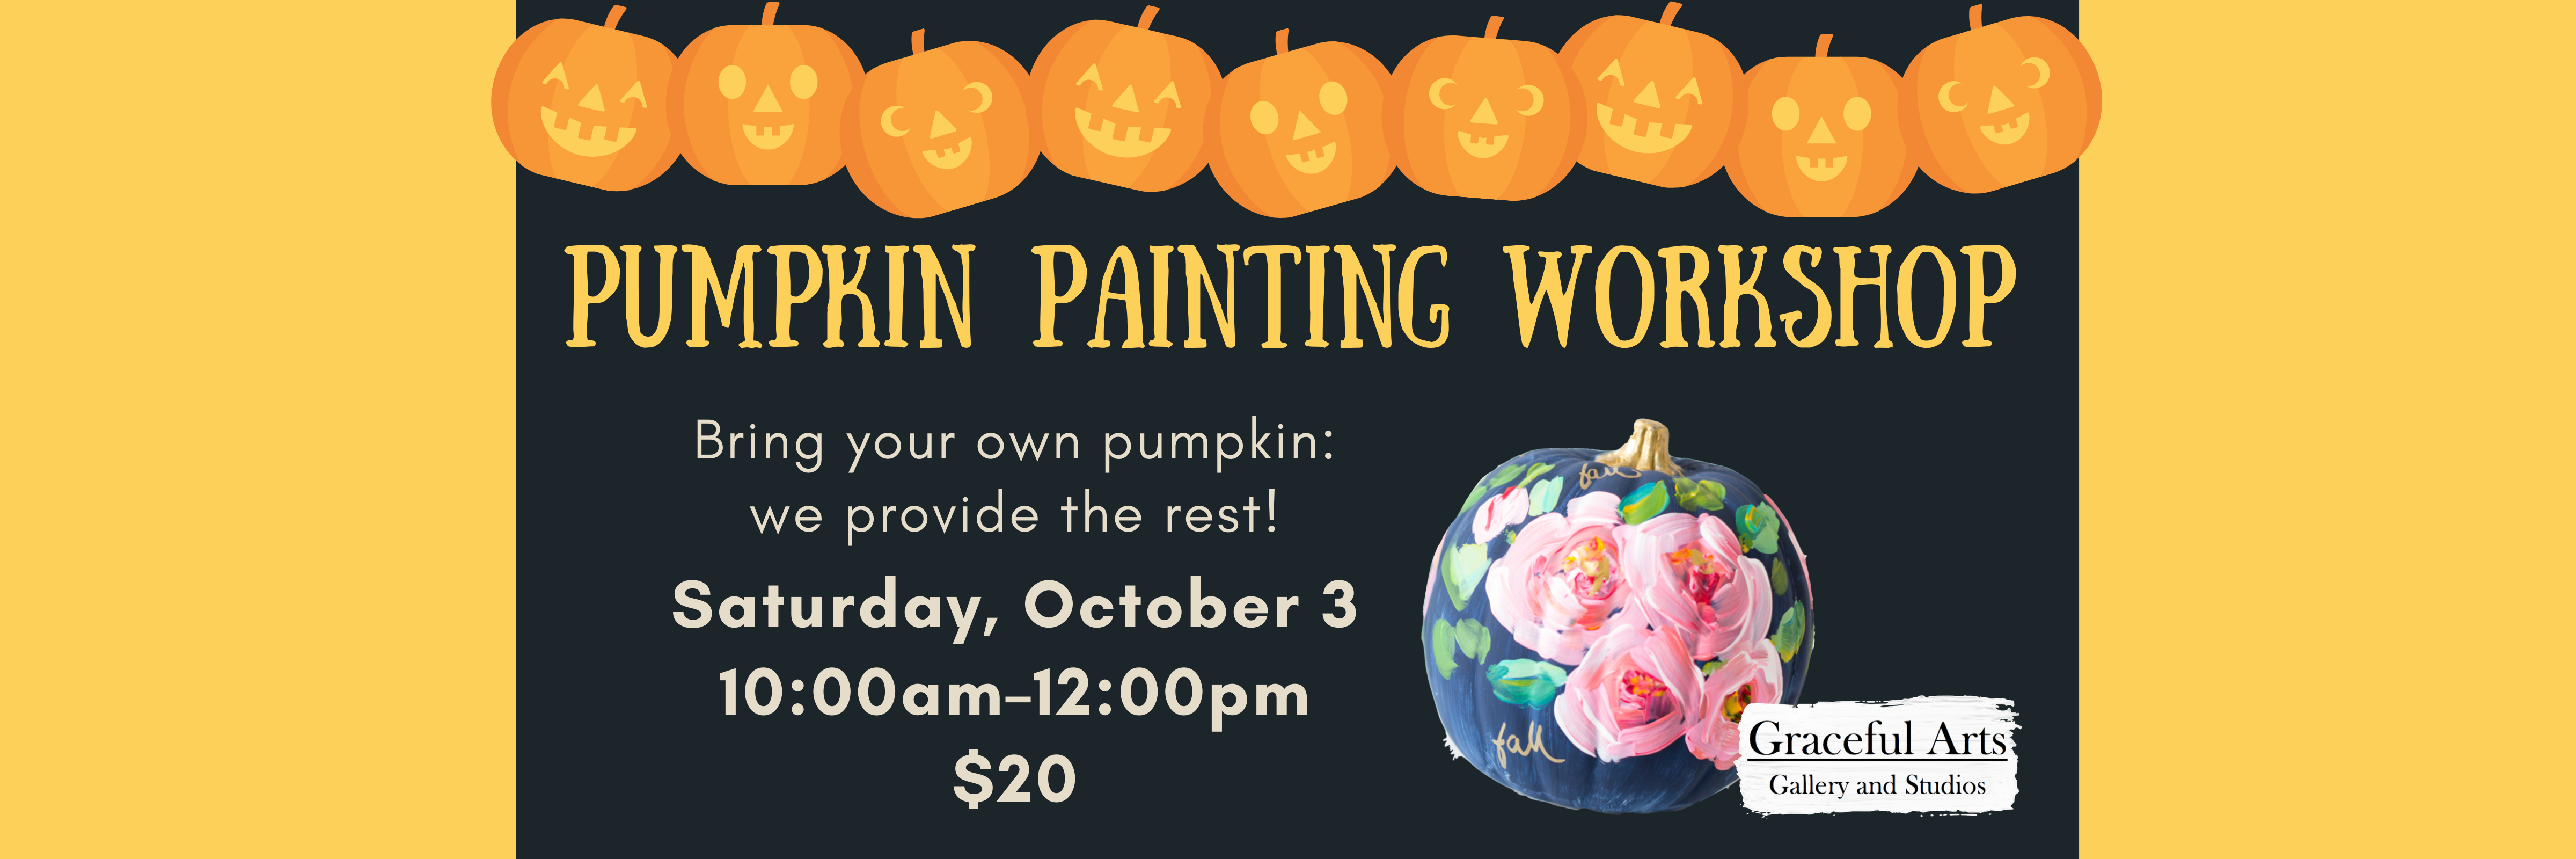 Pumpkin Painting Workshop